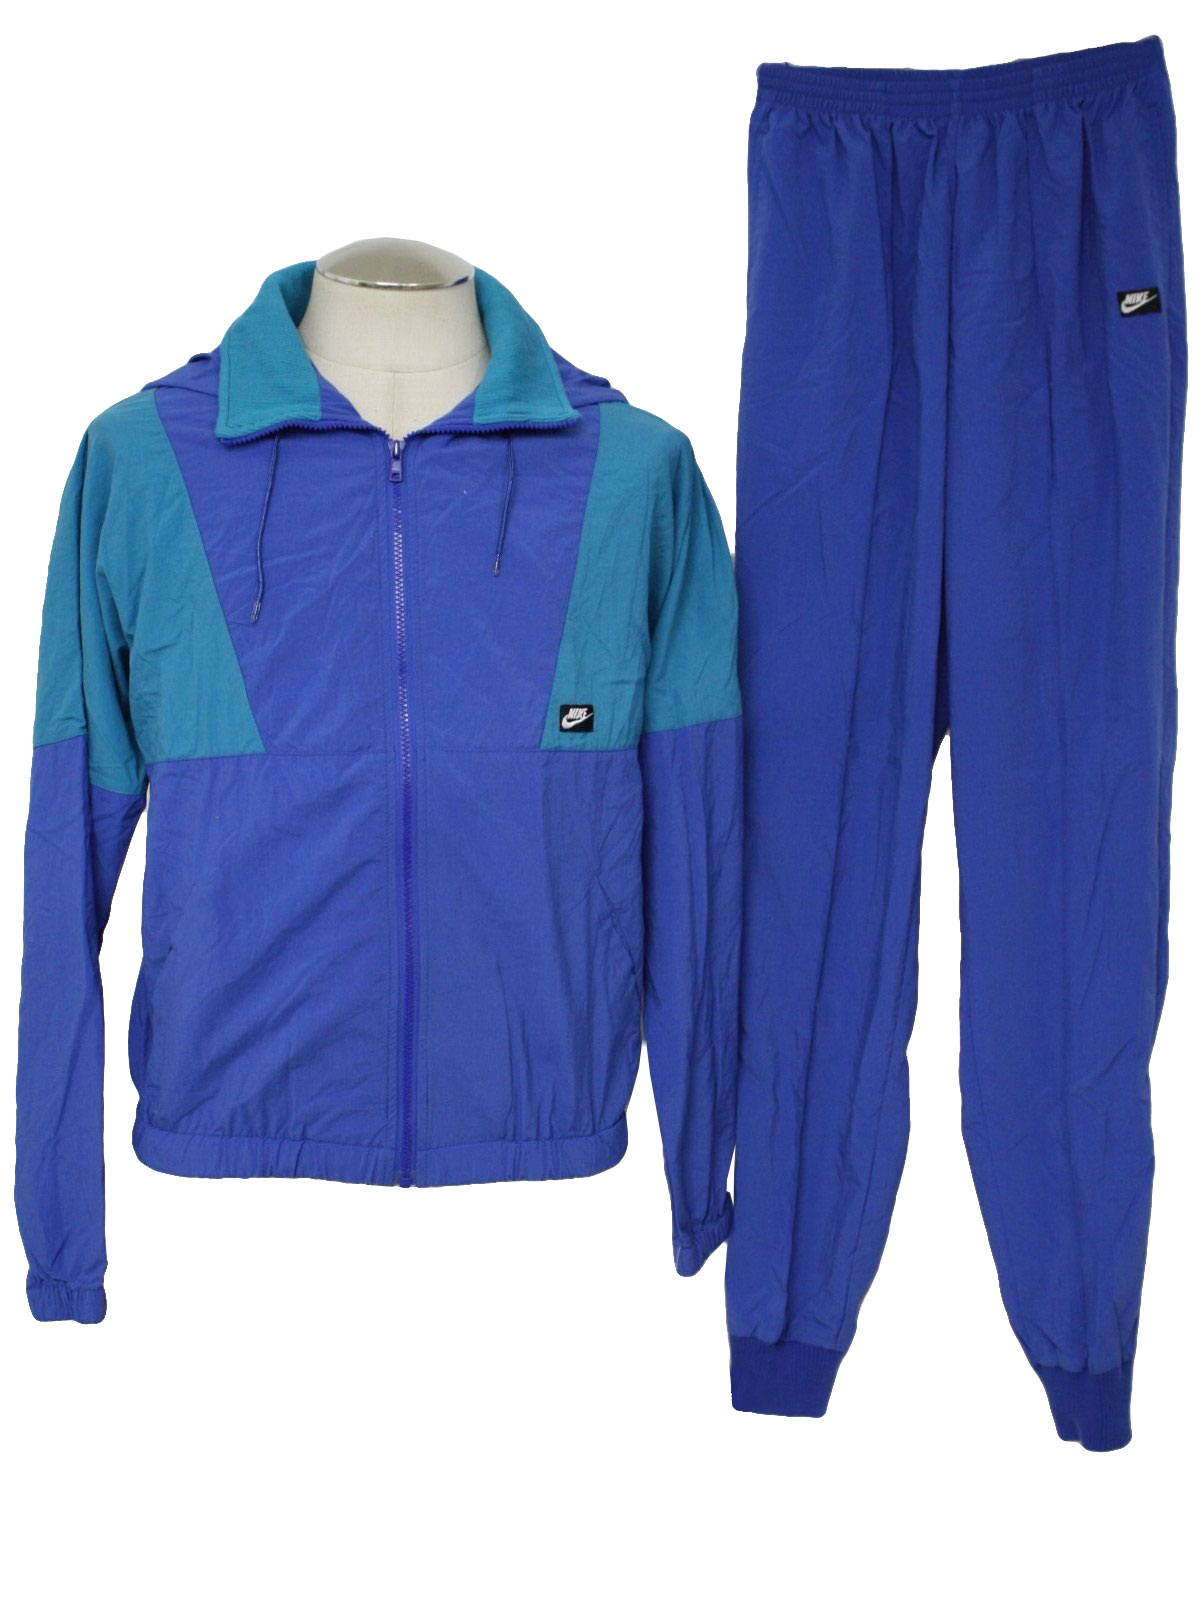 Nike 80's Vintage Suit: late 80s -Nike- Mens two piece nylon totally 80s track  suit aquamarine and blue track suit. Get your kick balls out because in  this ...